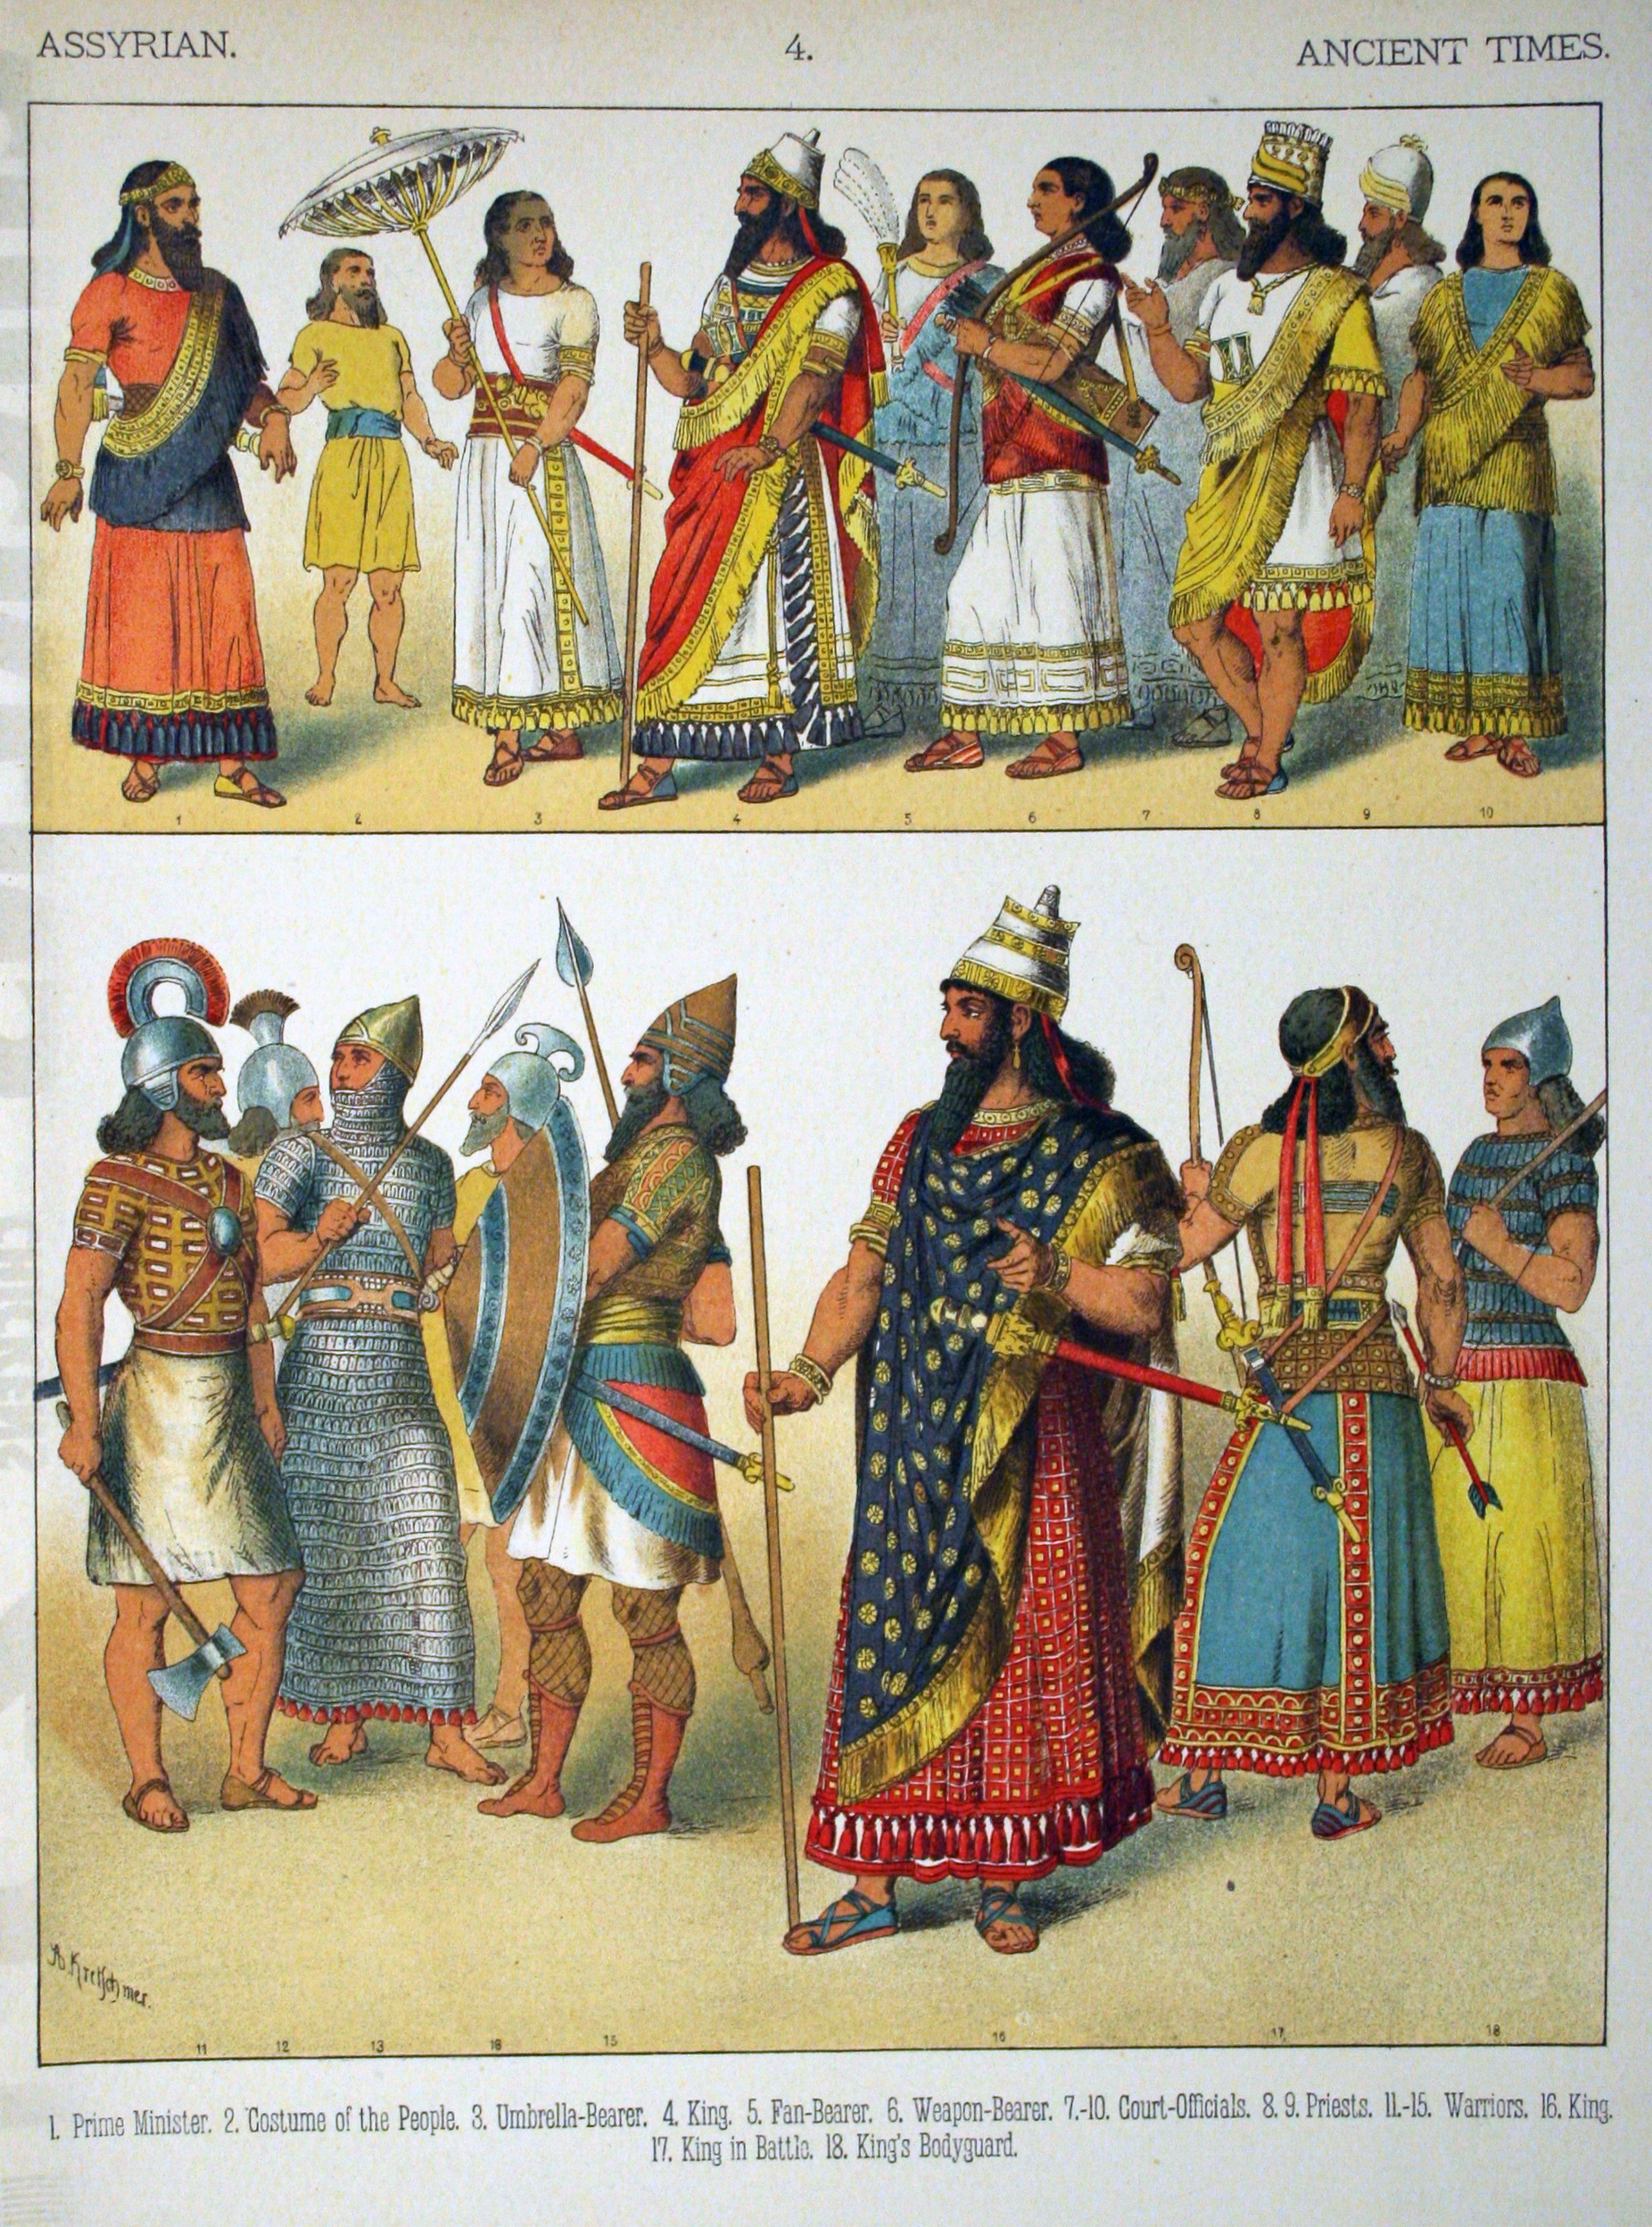 File:Ancient Times, Assyrian. - 004 - Costumes of All ...